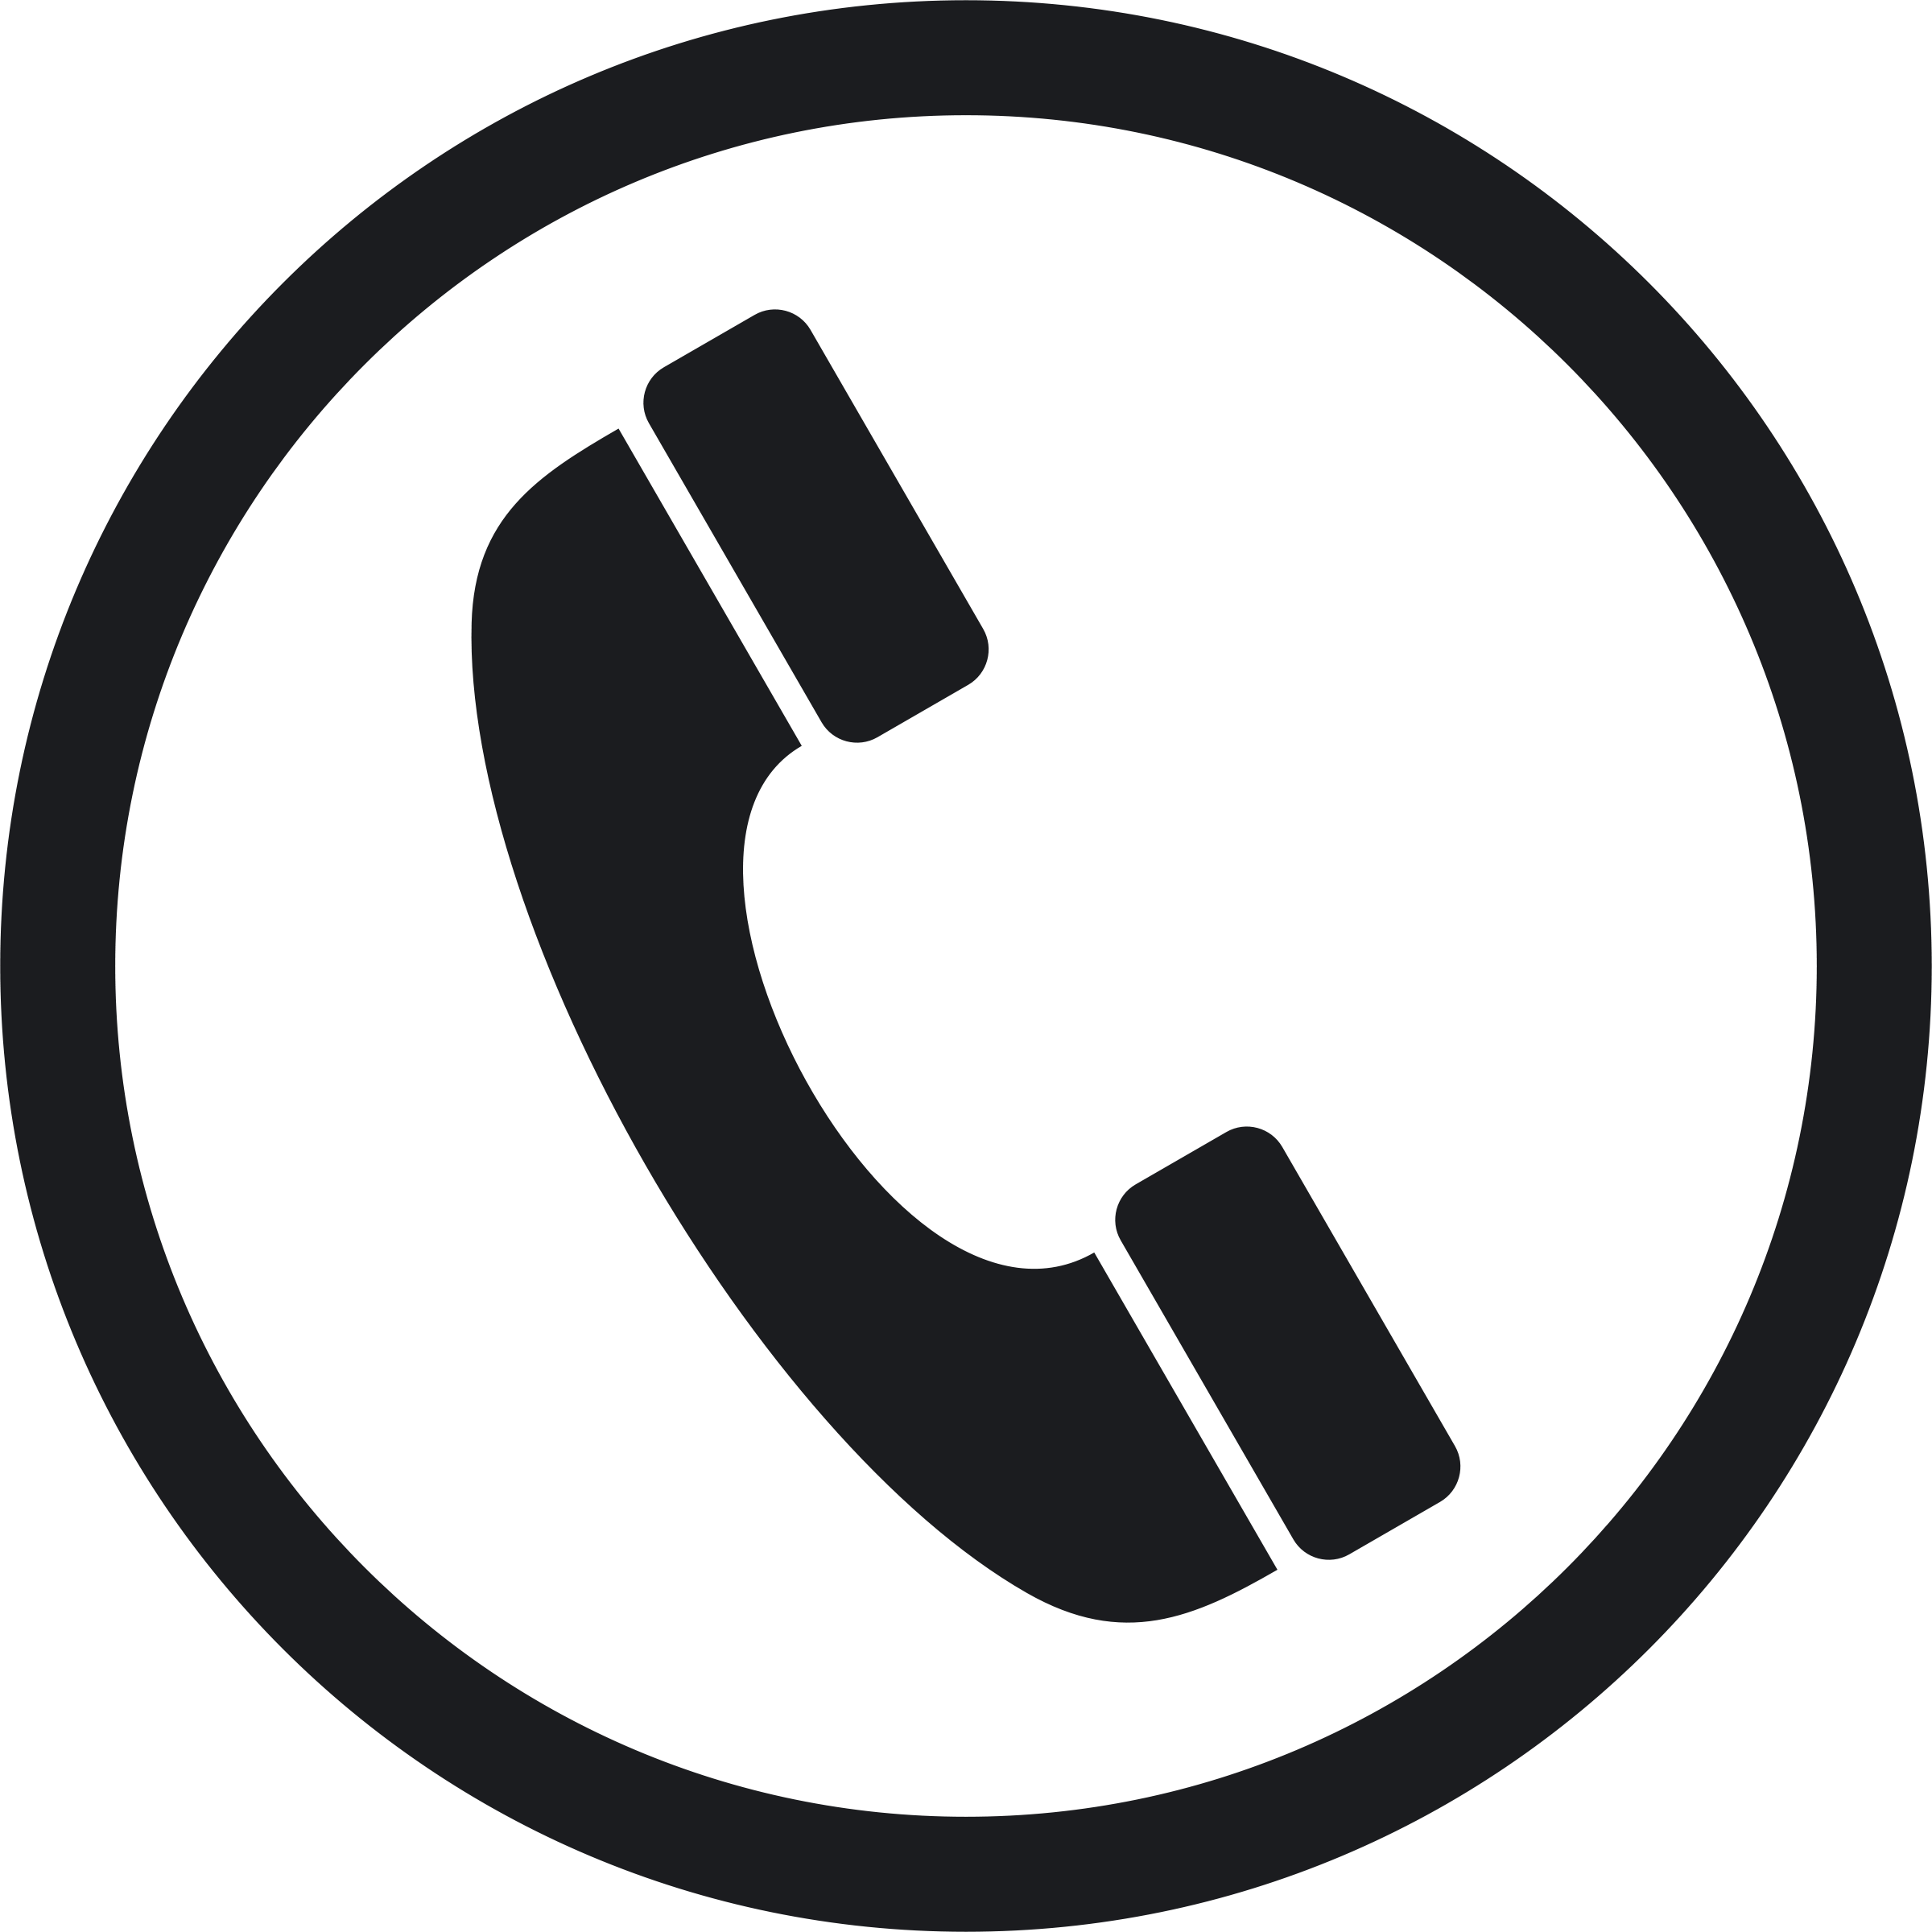 Dialer icon clipart picture royalty free technical | graphic symbol types in 2019 | Phone icon, Phone logo ... picture royalty free